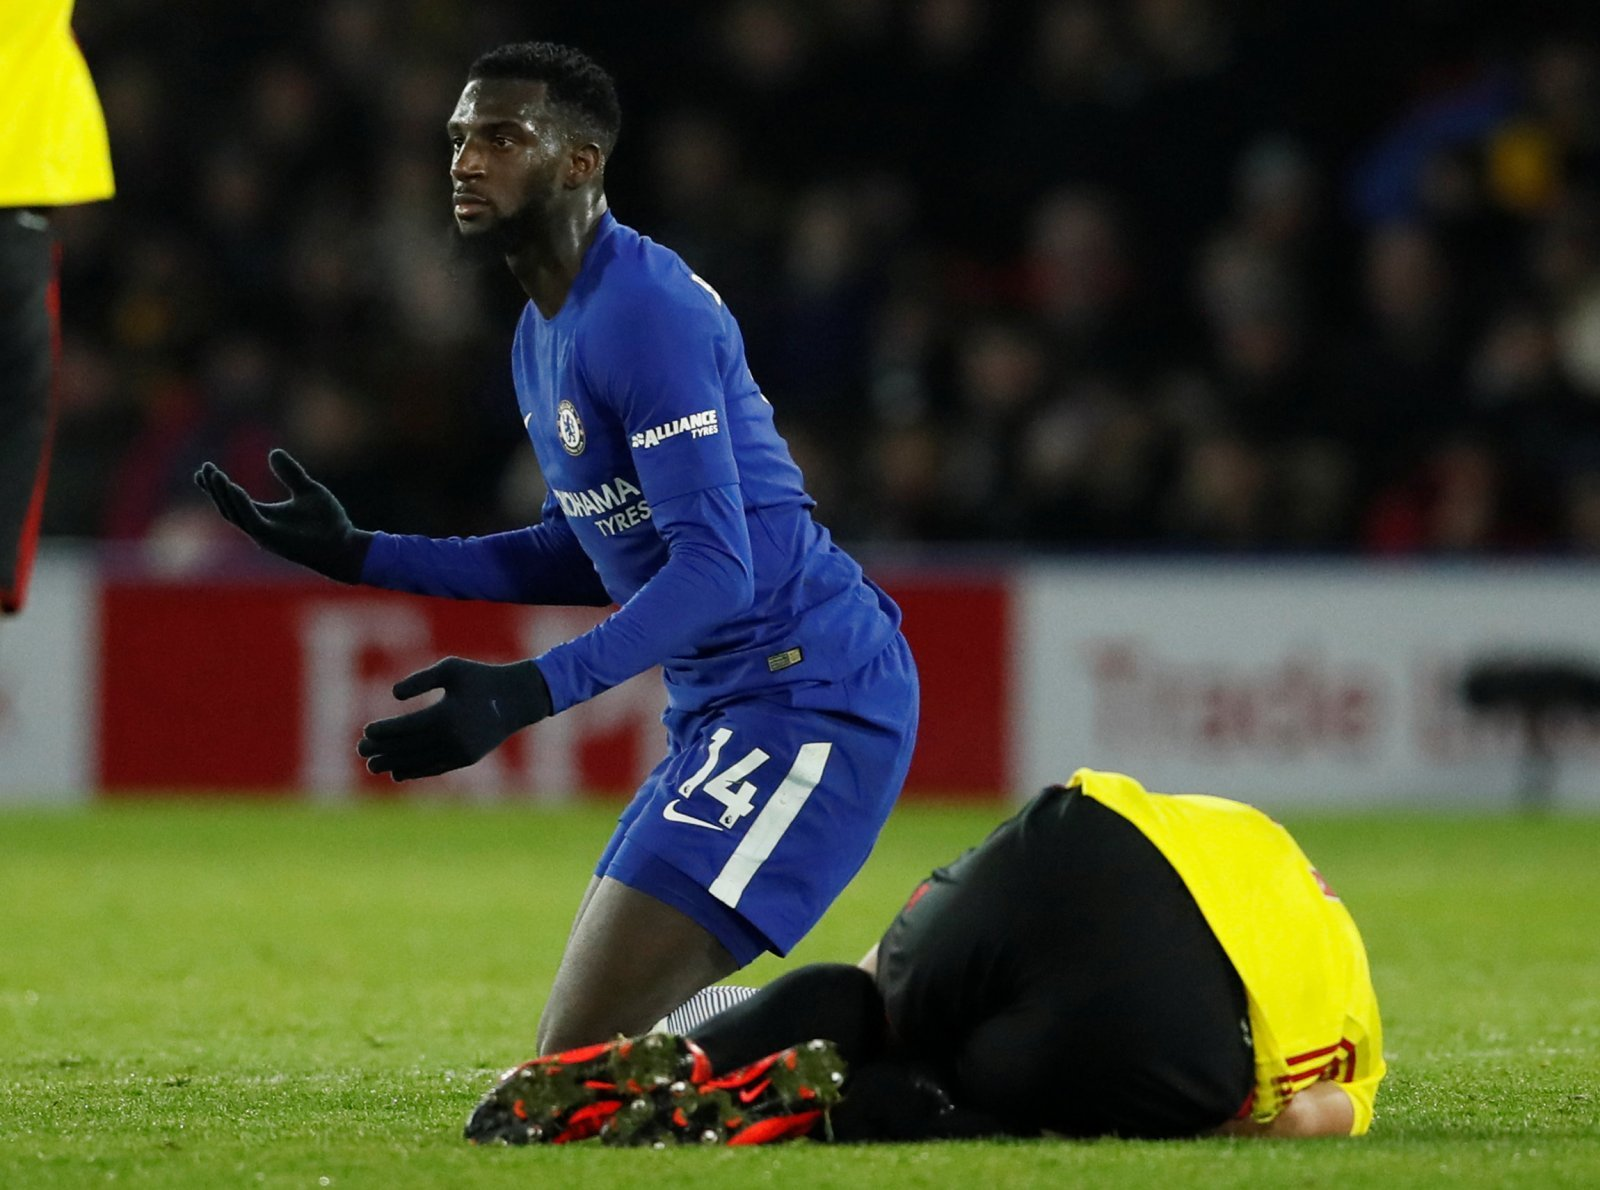 Chelsea fans slam Bakayoko after pre-season game with Perth Glory